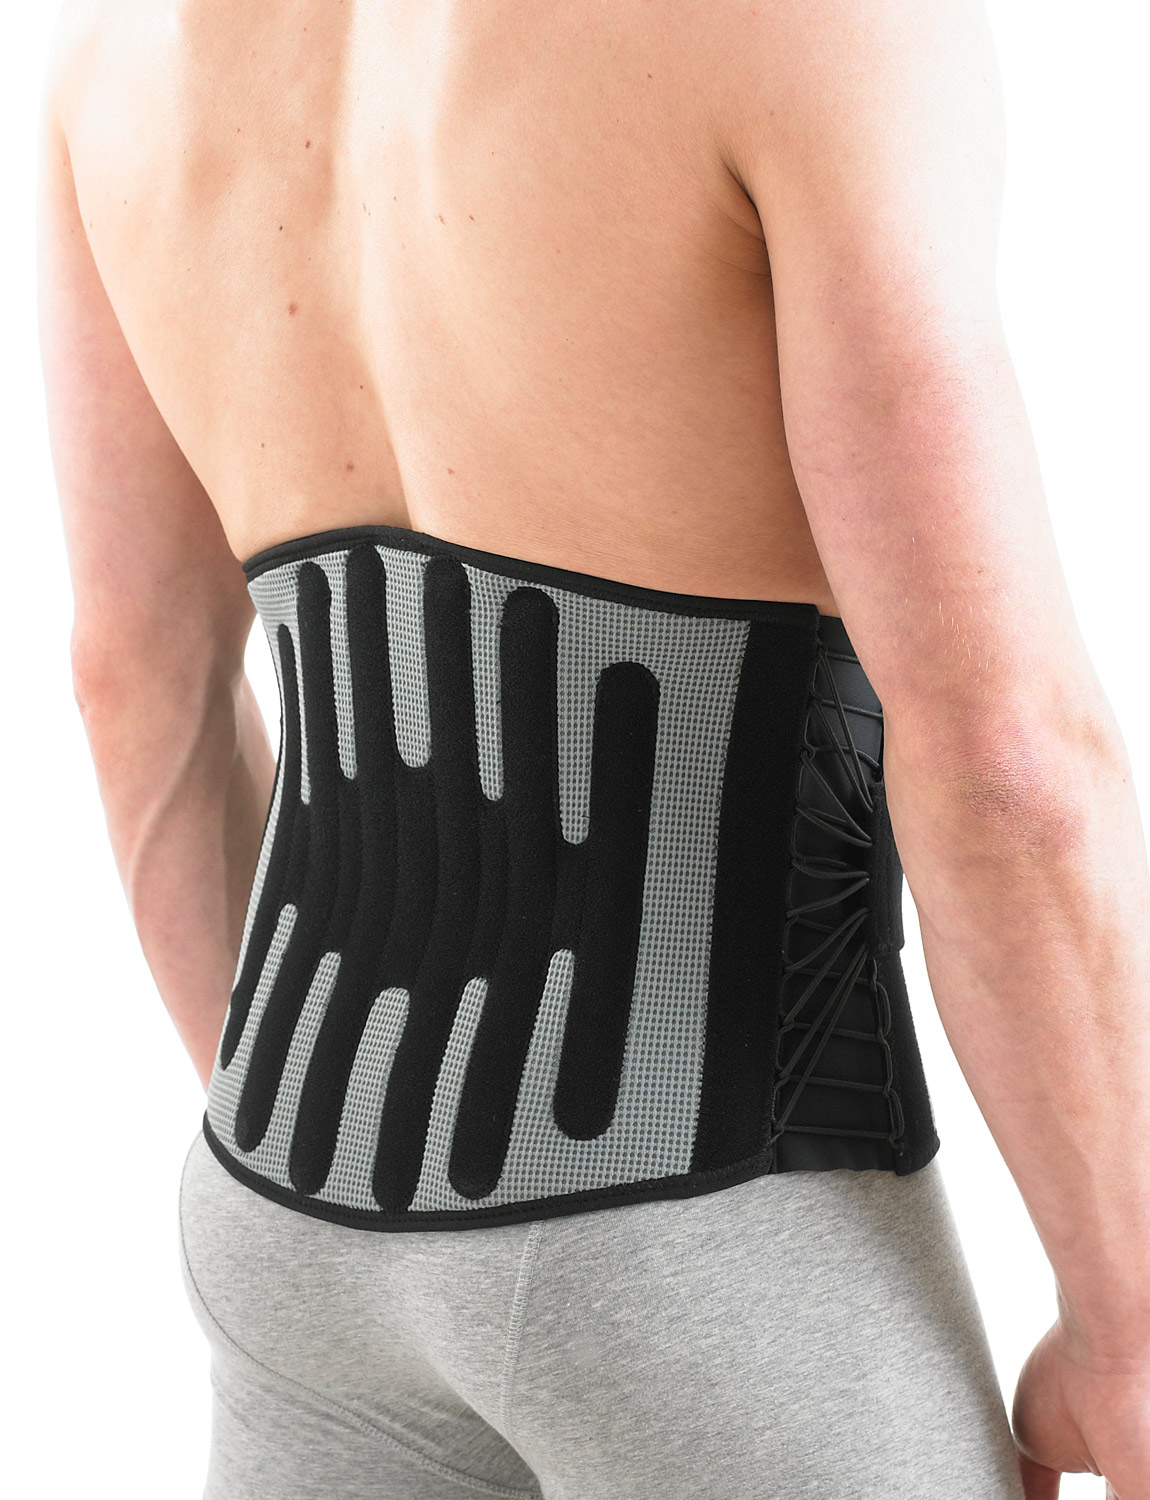 161 - STABILIZED BACK BRACE  Helps with rehabilitation following lumbar joint or muscle strains or pains. The support fastens with a two-part system that features an elasticated lacing mechanism that cinches around the lumbar area combined with power straps. This enables adjustable support, and helps prevent unwanted twisting and over-stretching whilst maintaining correct posture, ideal for people suffering from chronic backache due to repetitive sporting or occupational activities.